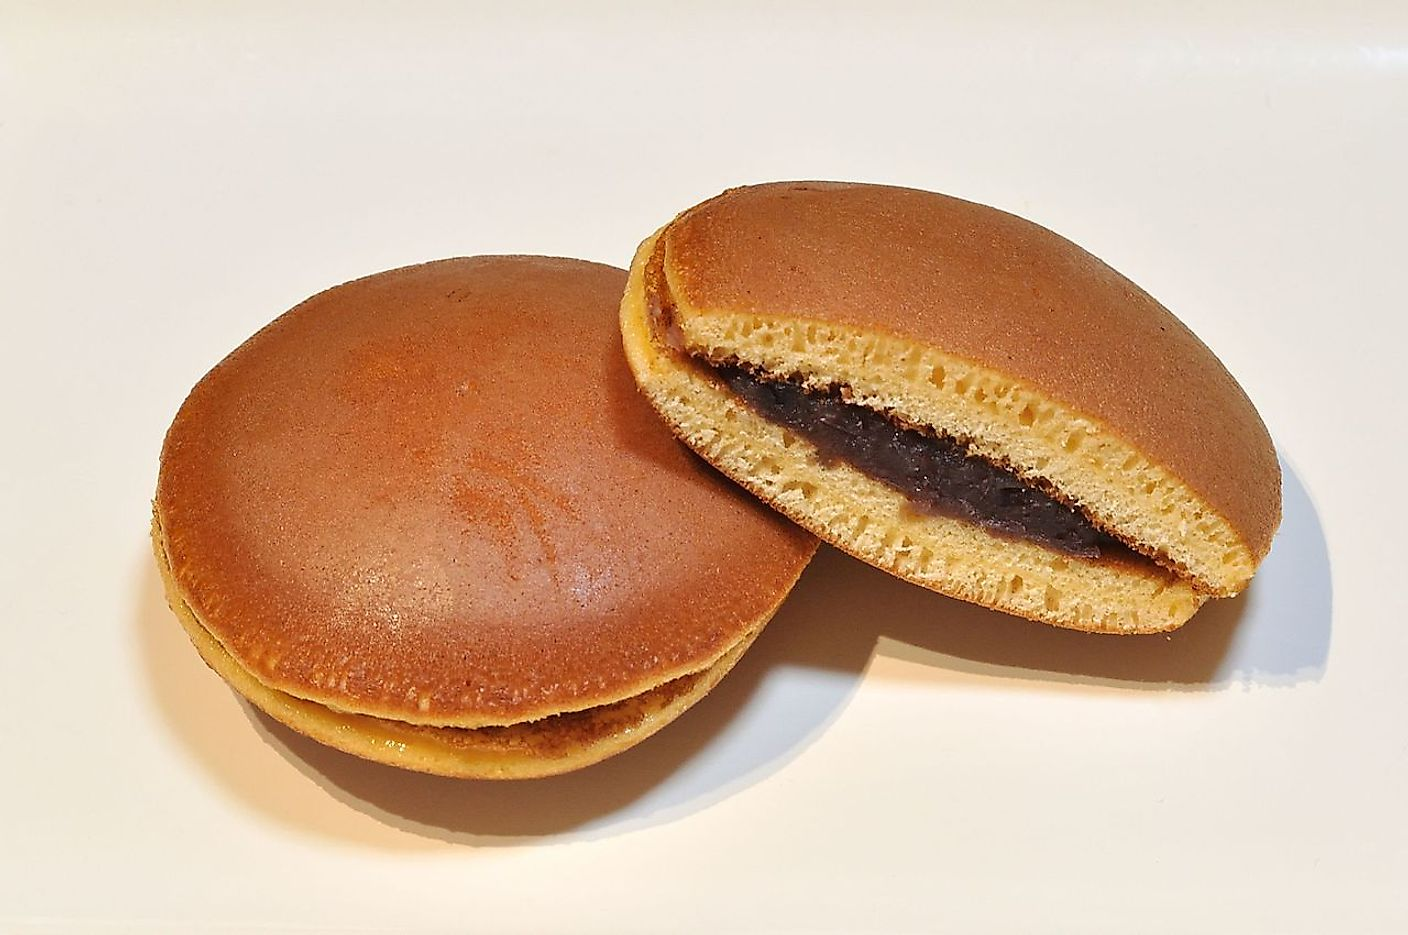 Typical dorayaki. Image credit: Ocdp/Wikimedia.org